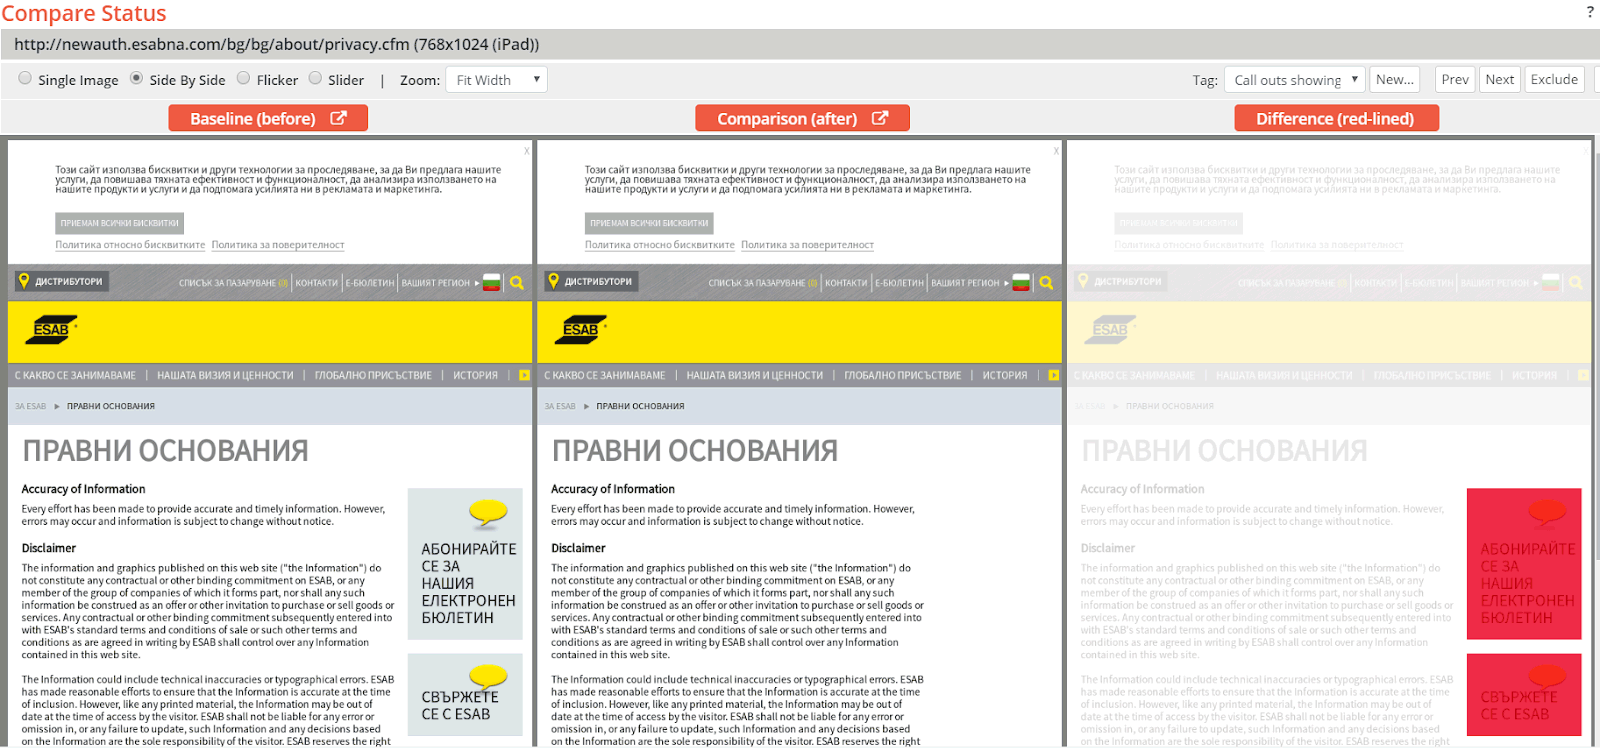 Bulgarian page where the light blue Call to Action callouts in the right-side column were missing